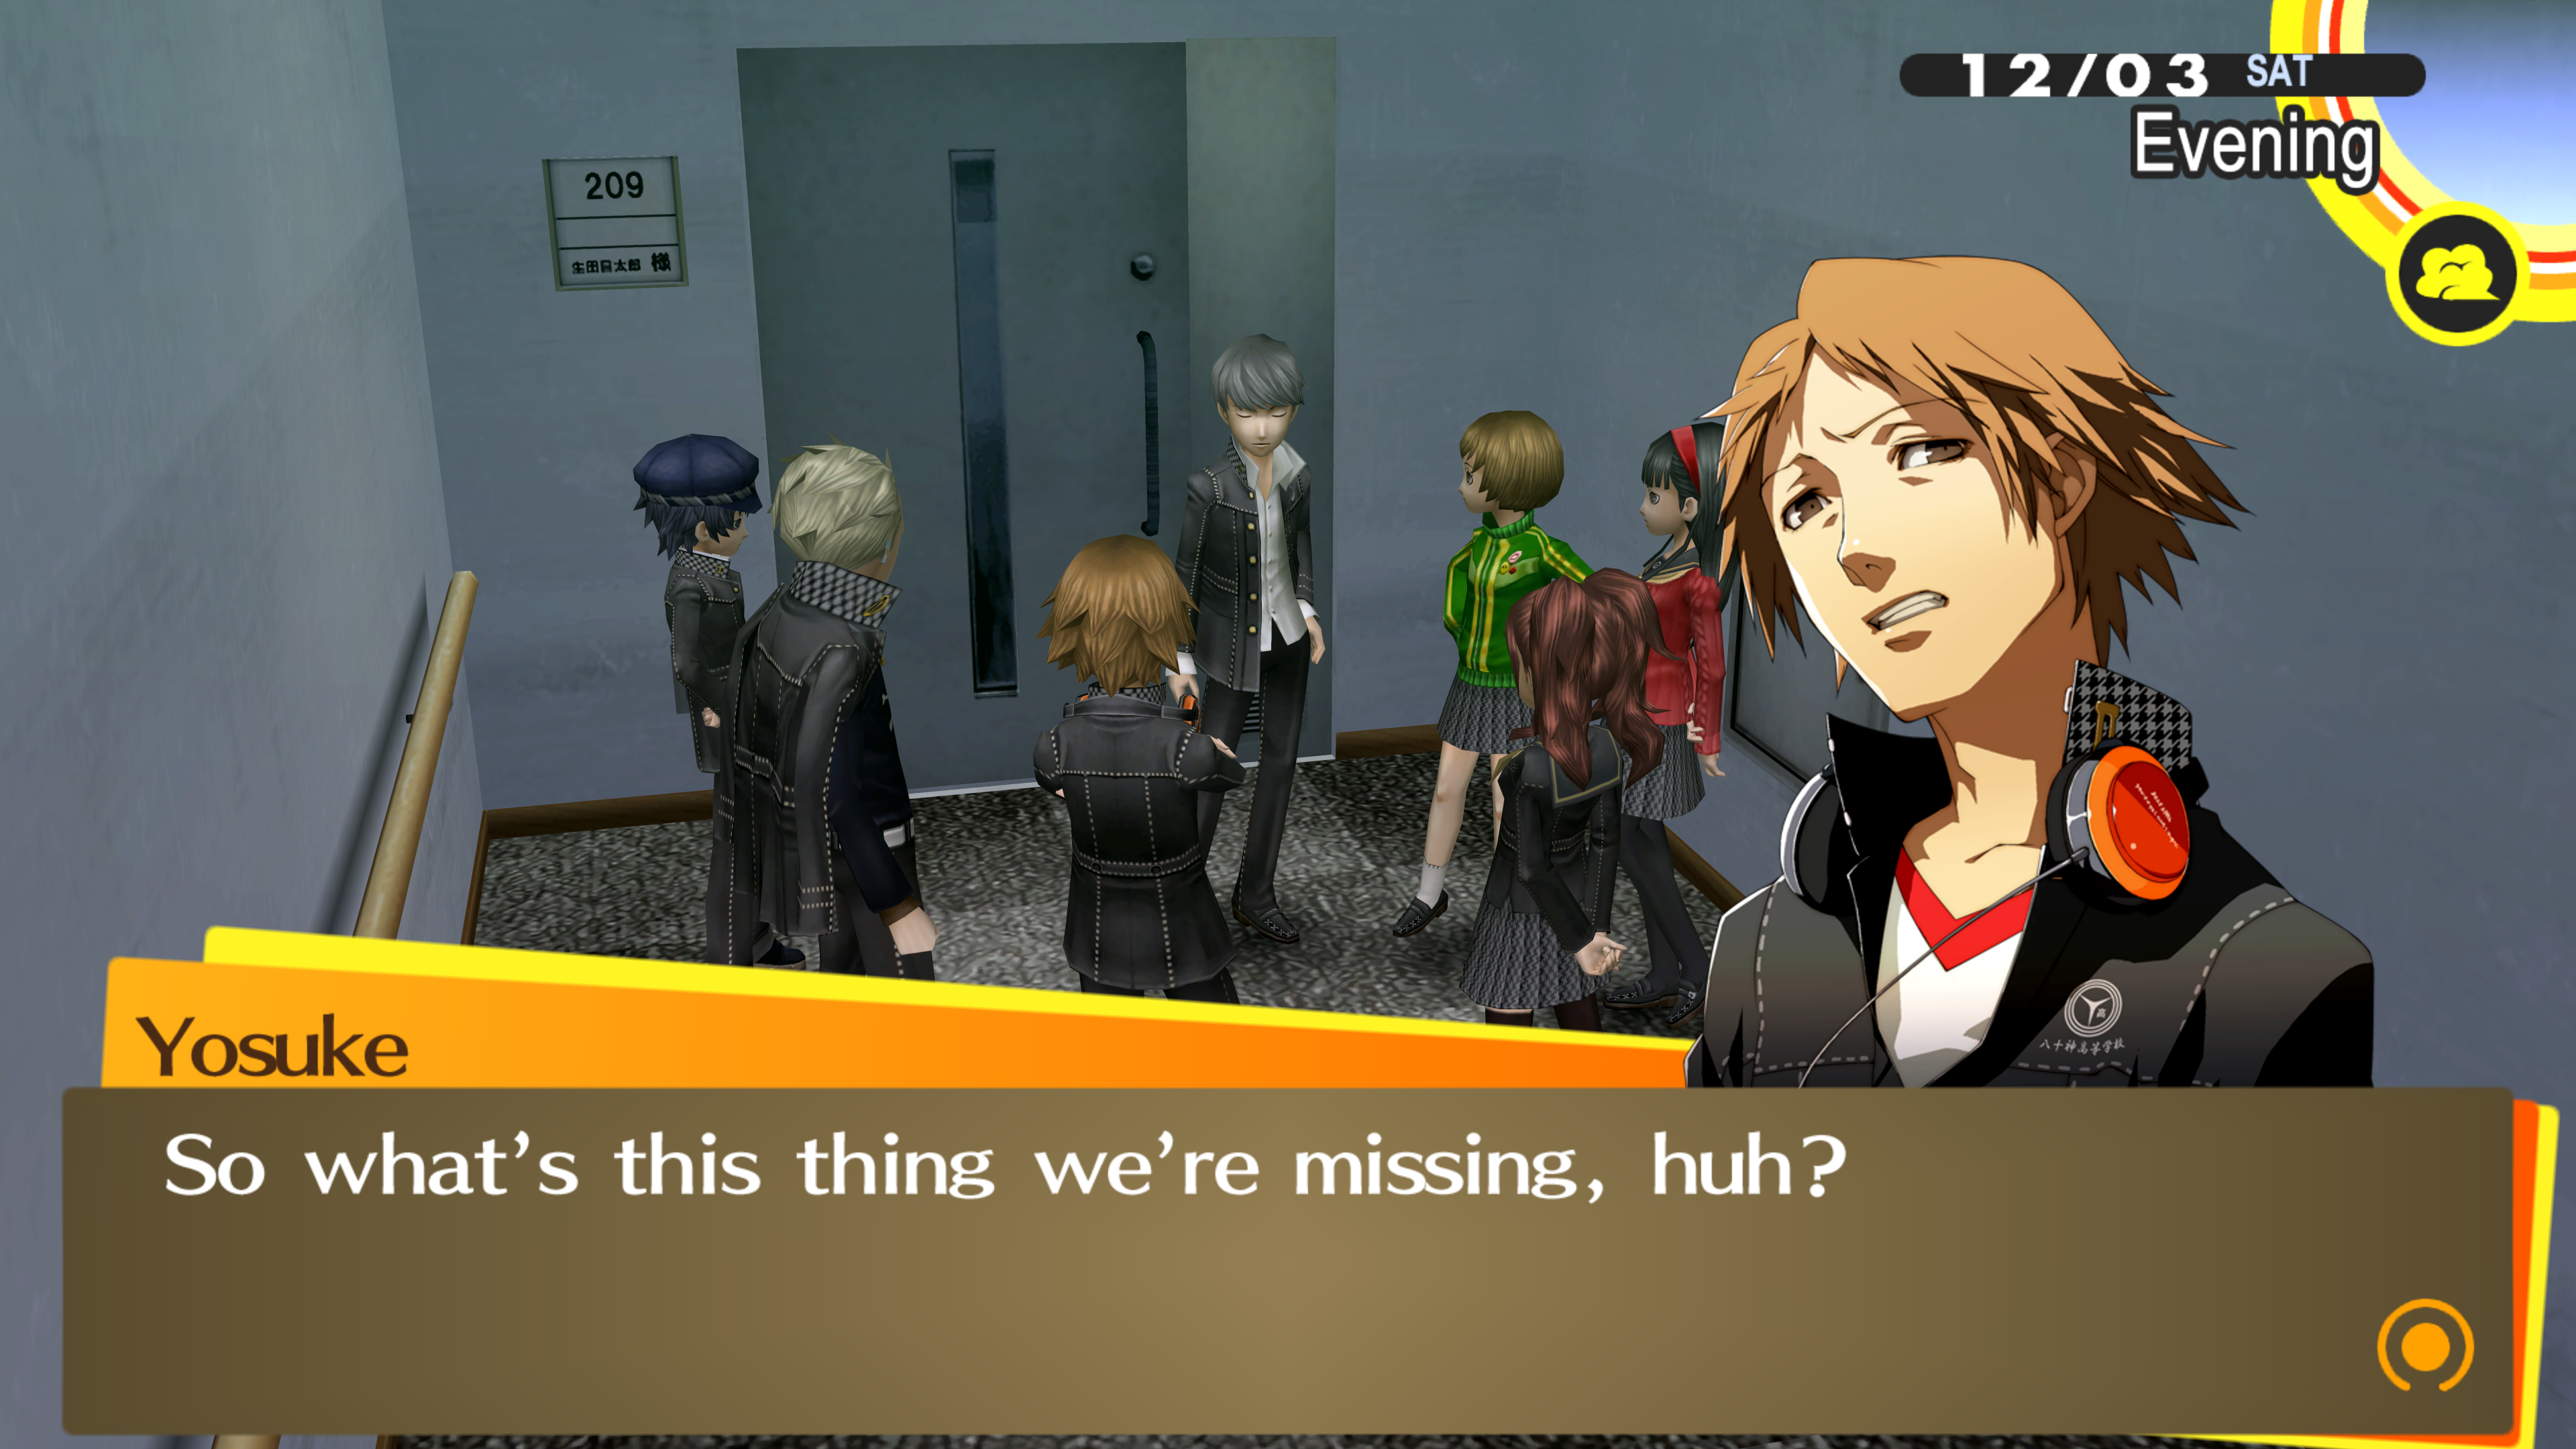 Persona 4 Golden Endings Guide How To Unlock The True Ending And Secret Dungeon Rpg Site